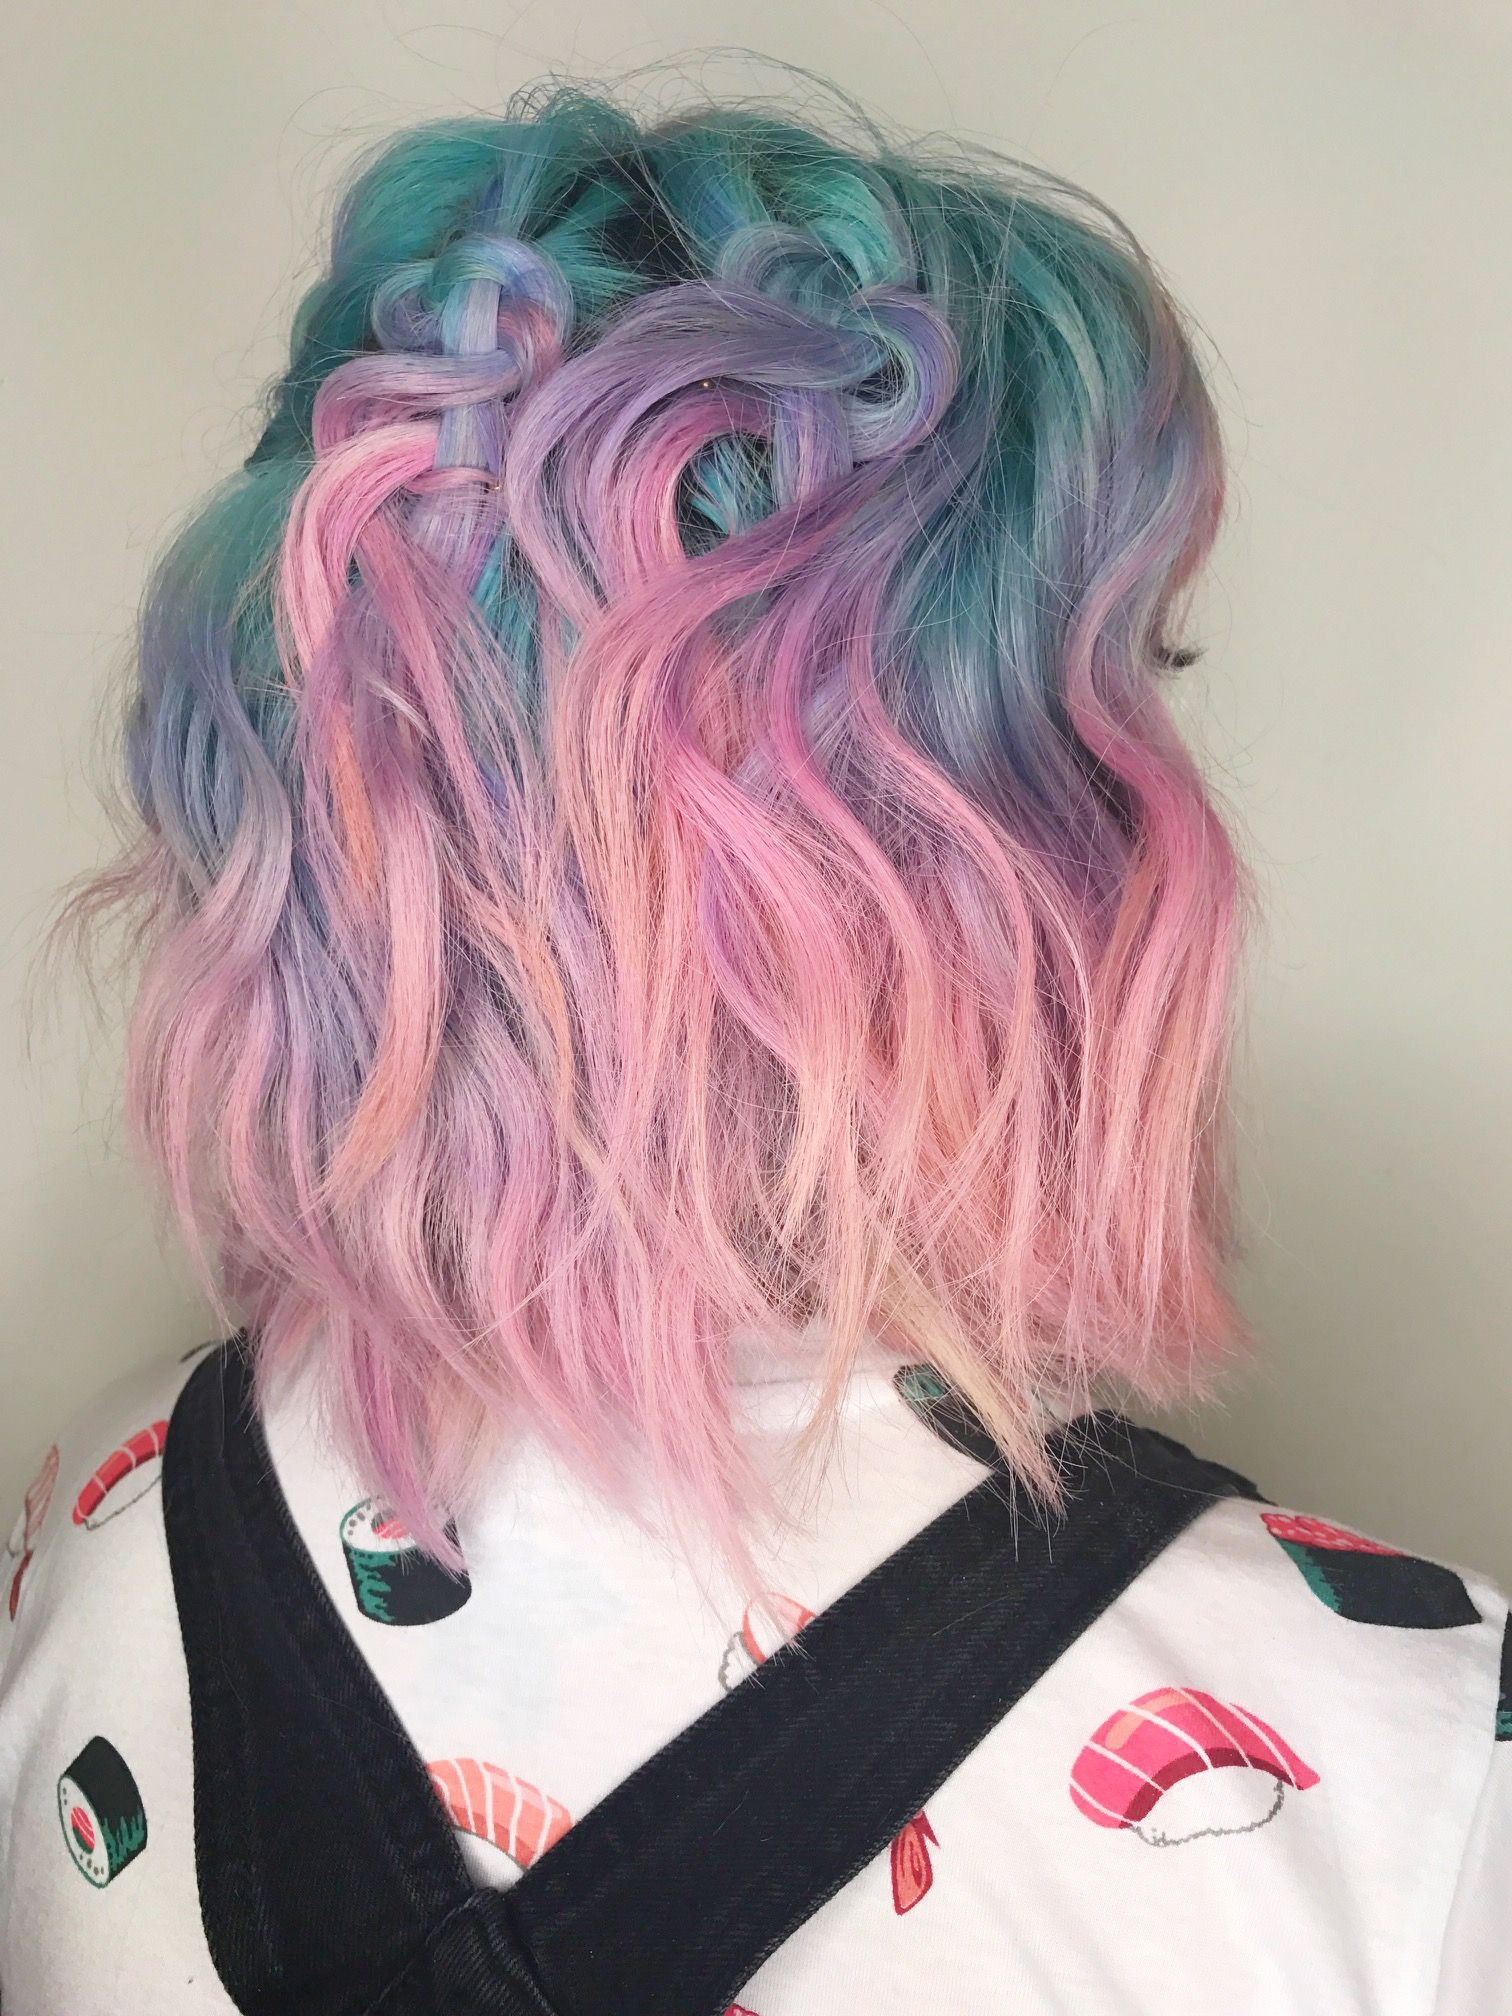 Mermaid hair hair dye pinterest youtube hair coloring and